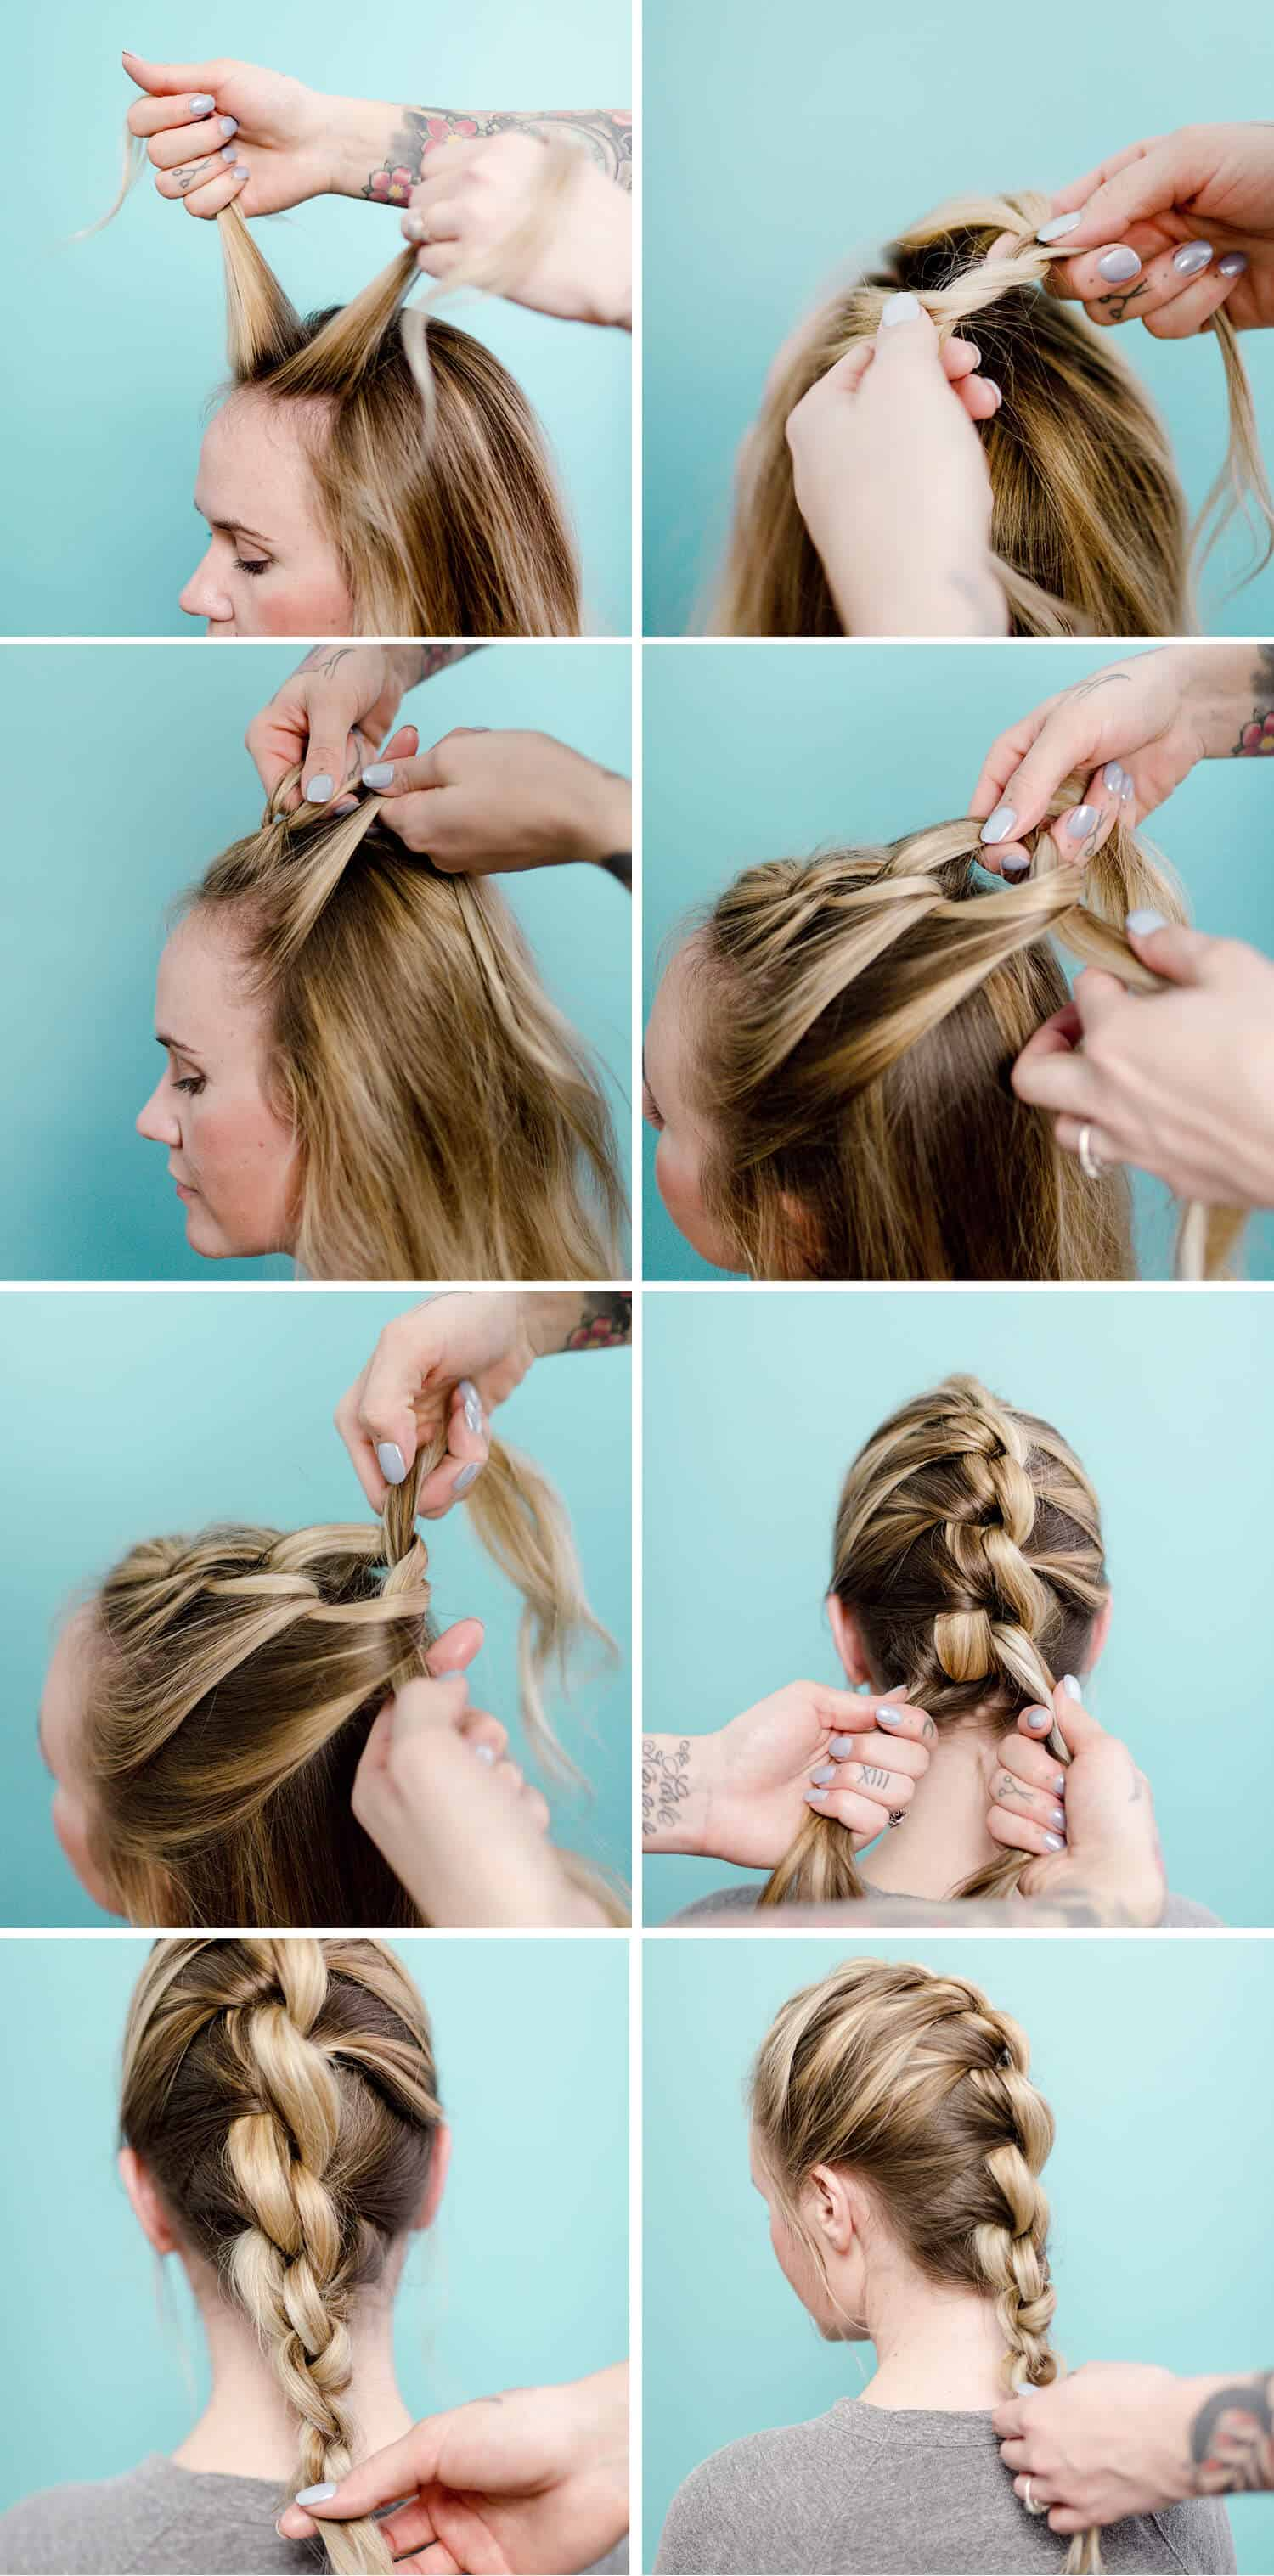 Wonder Woman Hair Style : wonder, woman, style, (Wonder, Woman, Inspired), Knotted, Braid, Beautiful